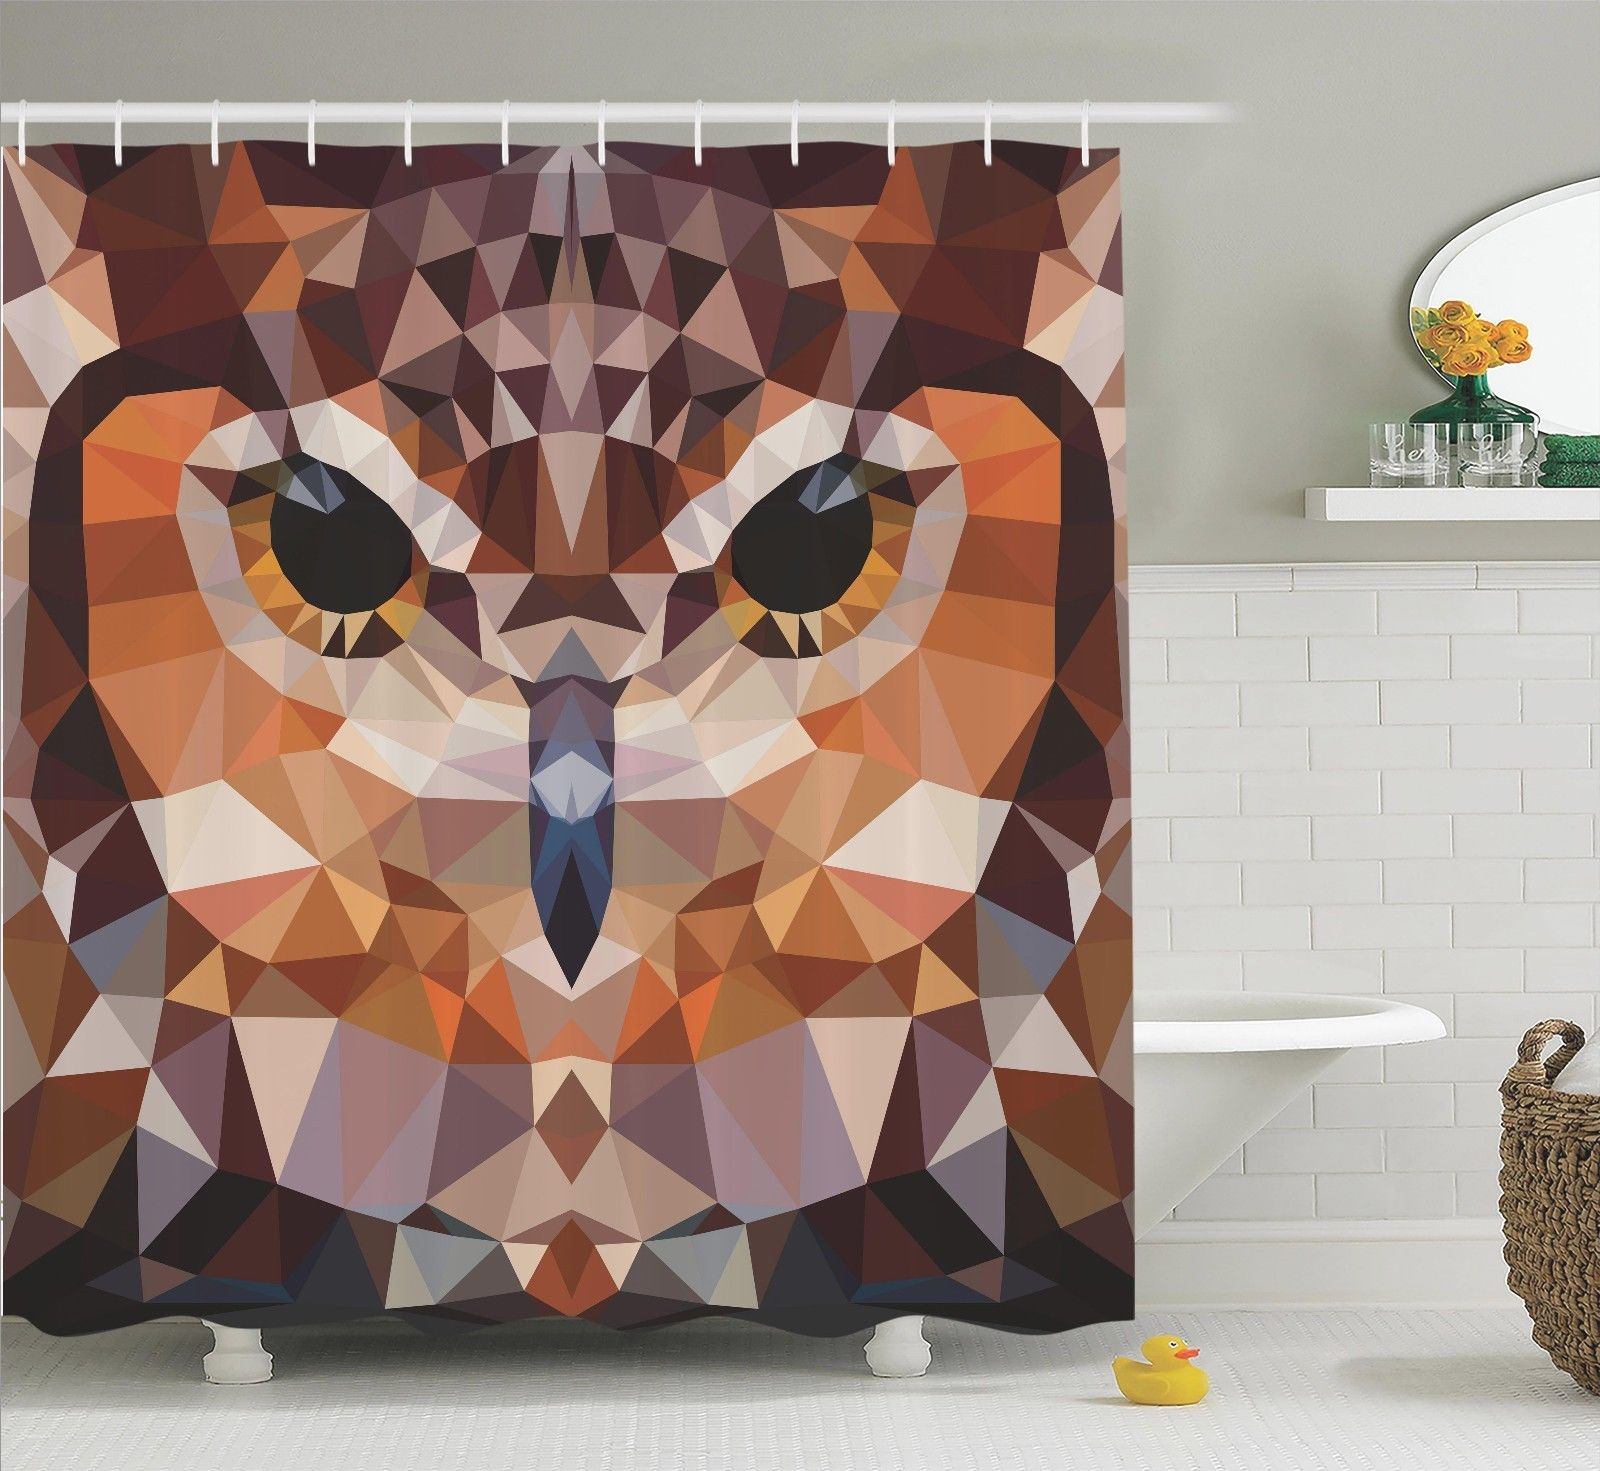 Geometric Decor Shower Curtain Set, Mosaic Owl Head In Linked Triangle Forms Retro Style Funky Geometric Art Boho Decor, Bathroom Accessories, 69W X 70L Inches, By Ambesonne